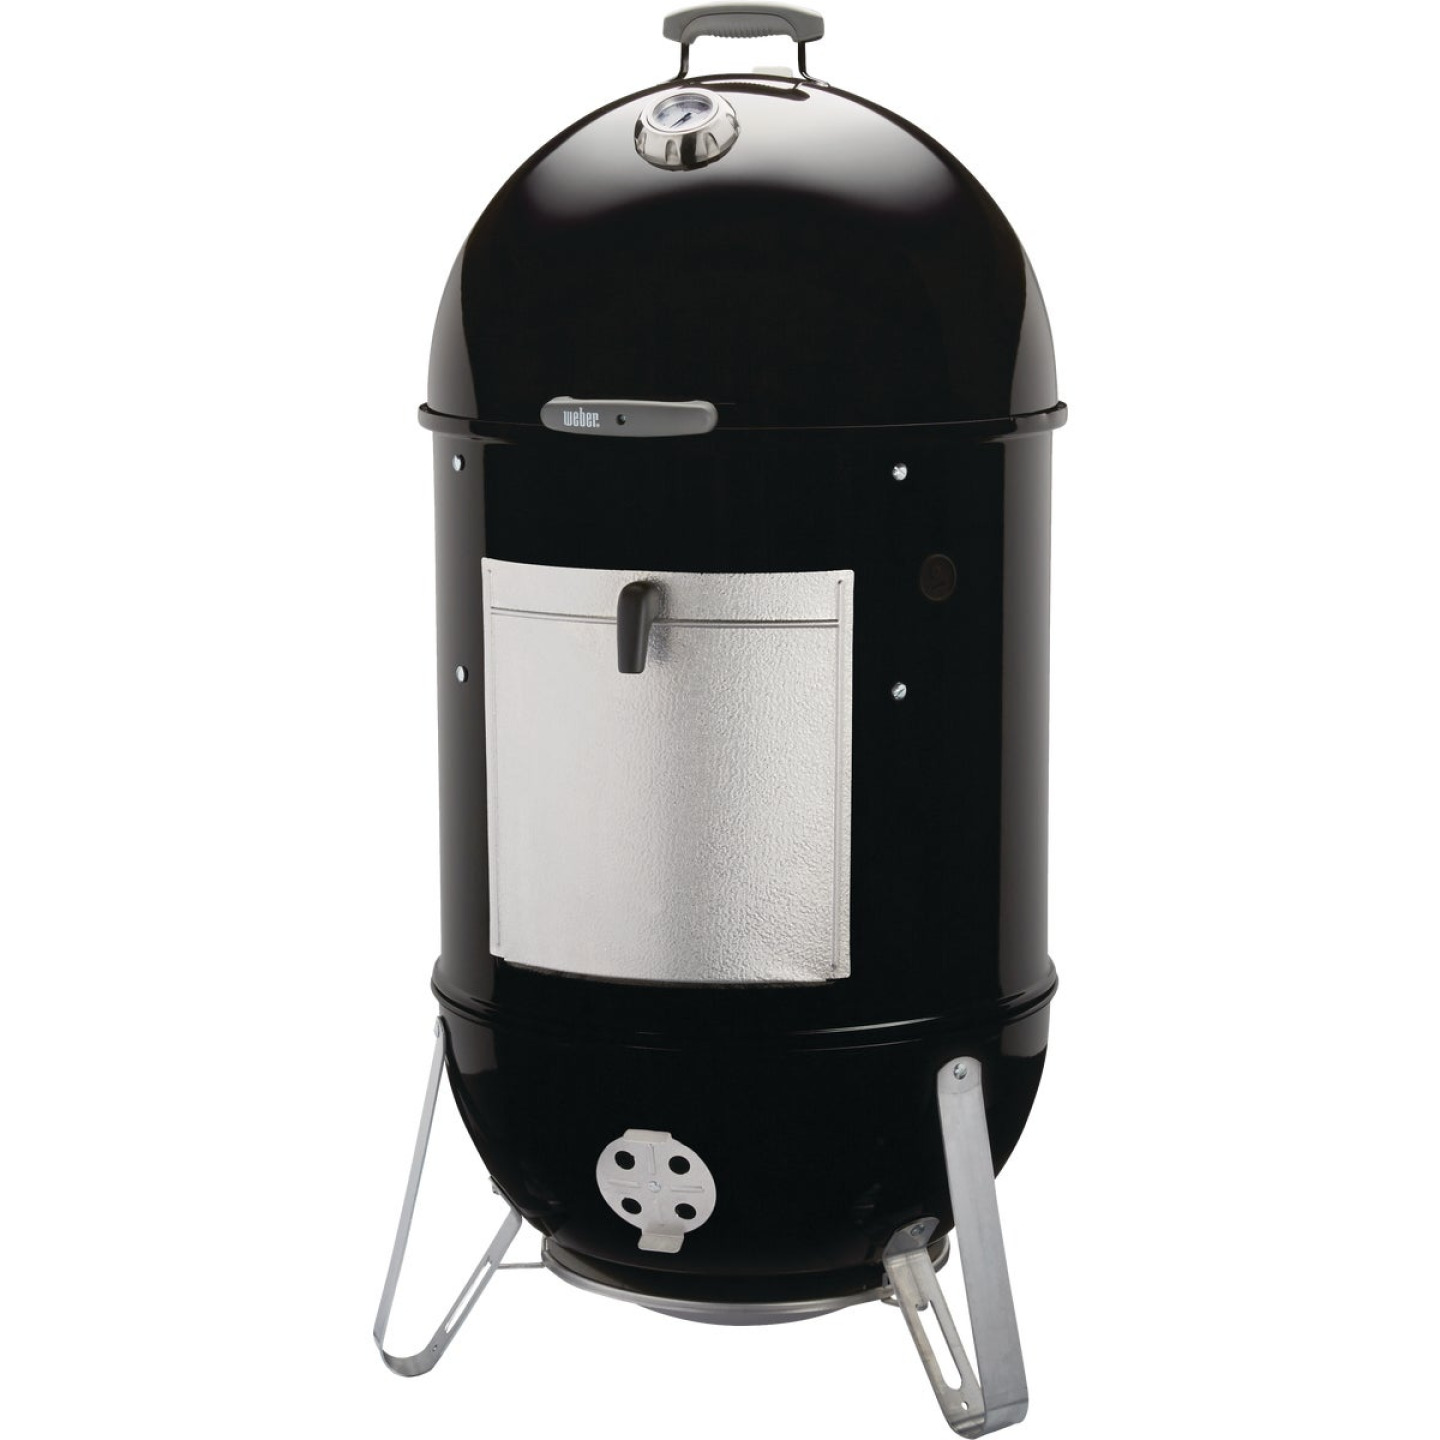 Weber Smokey Mountain Cooker 22 In. Dia. 726 Sq. In. Vertical Charcoal Smoker Image 10